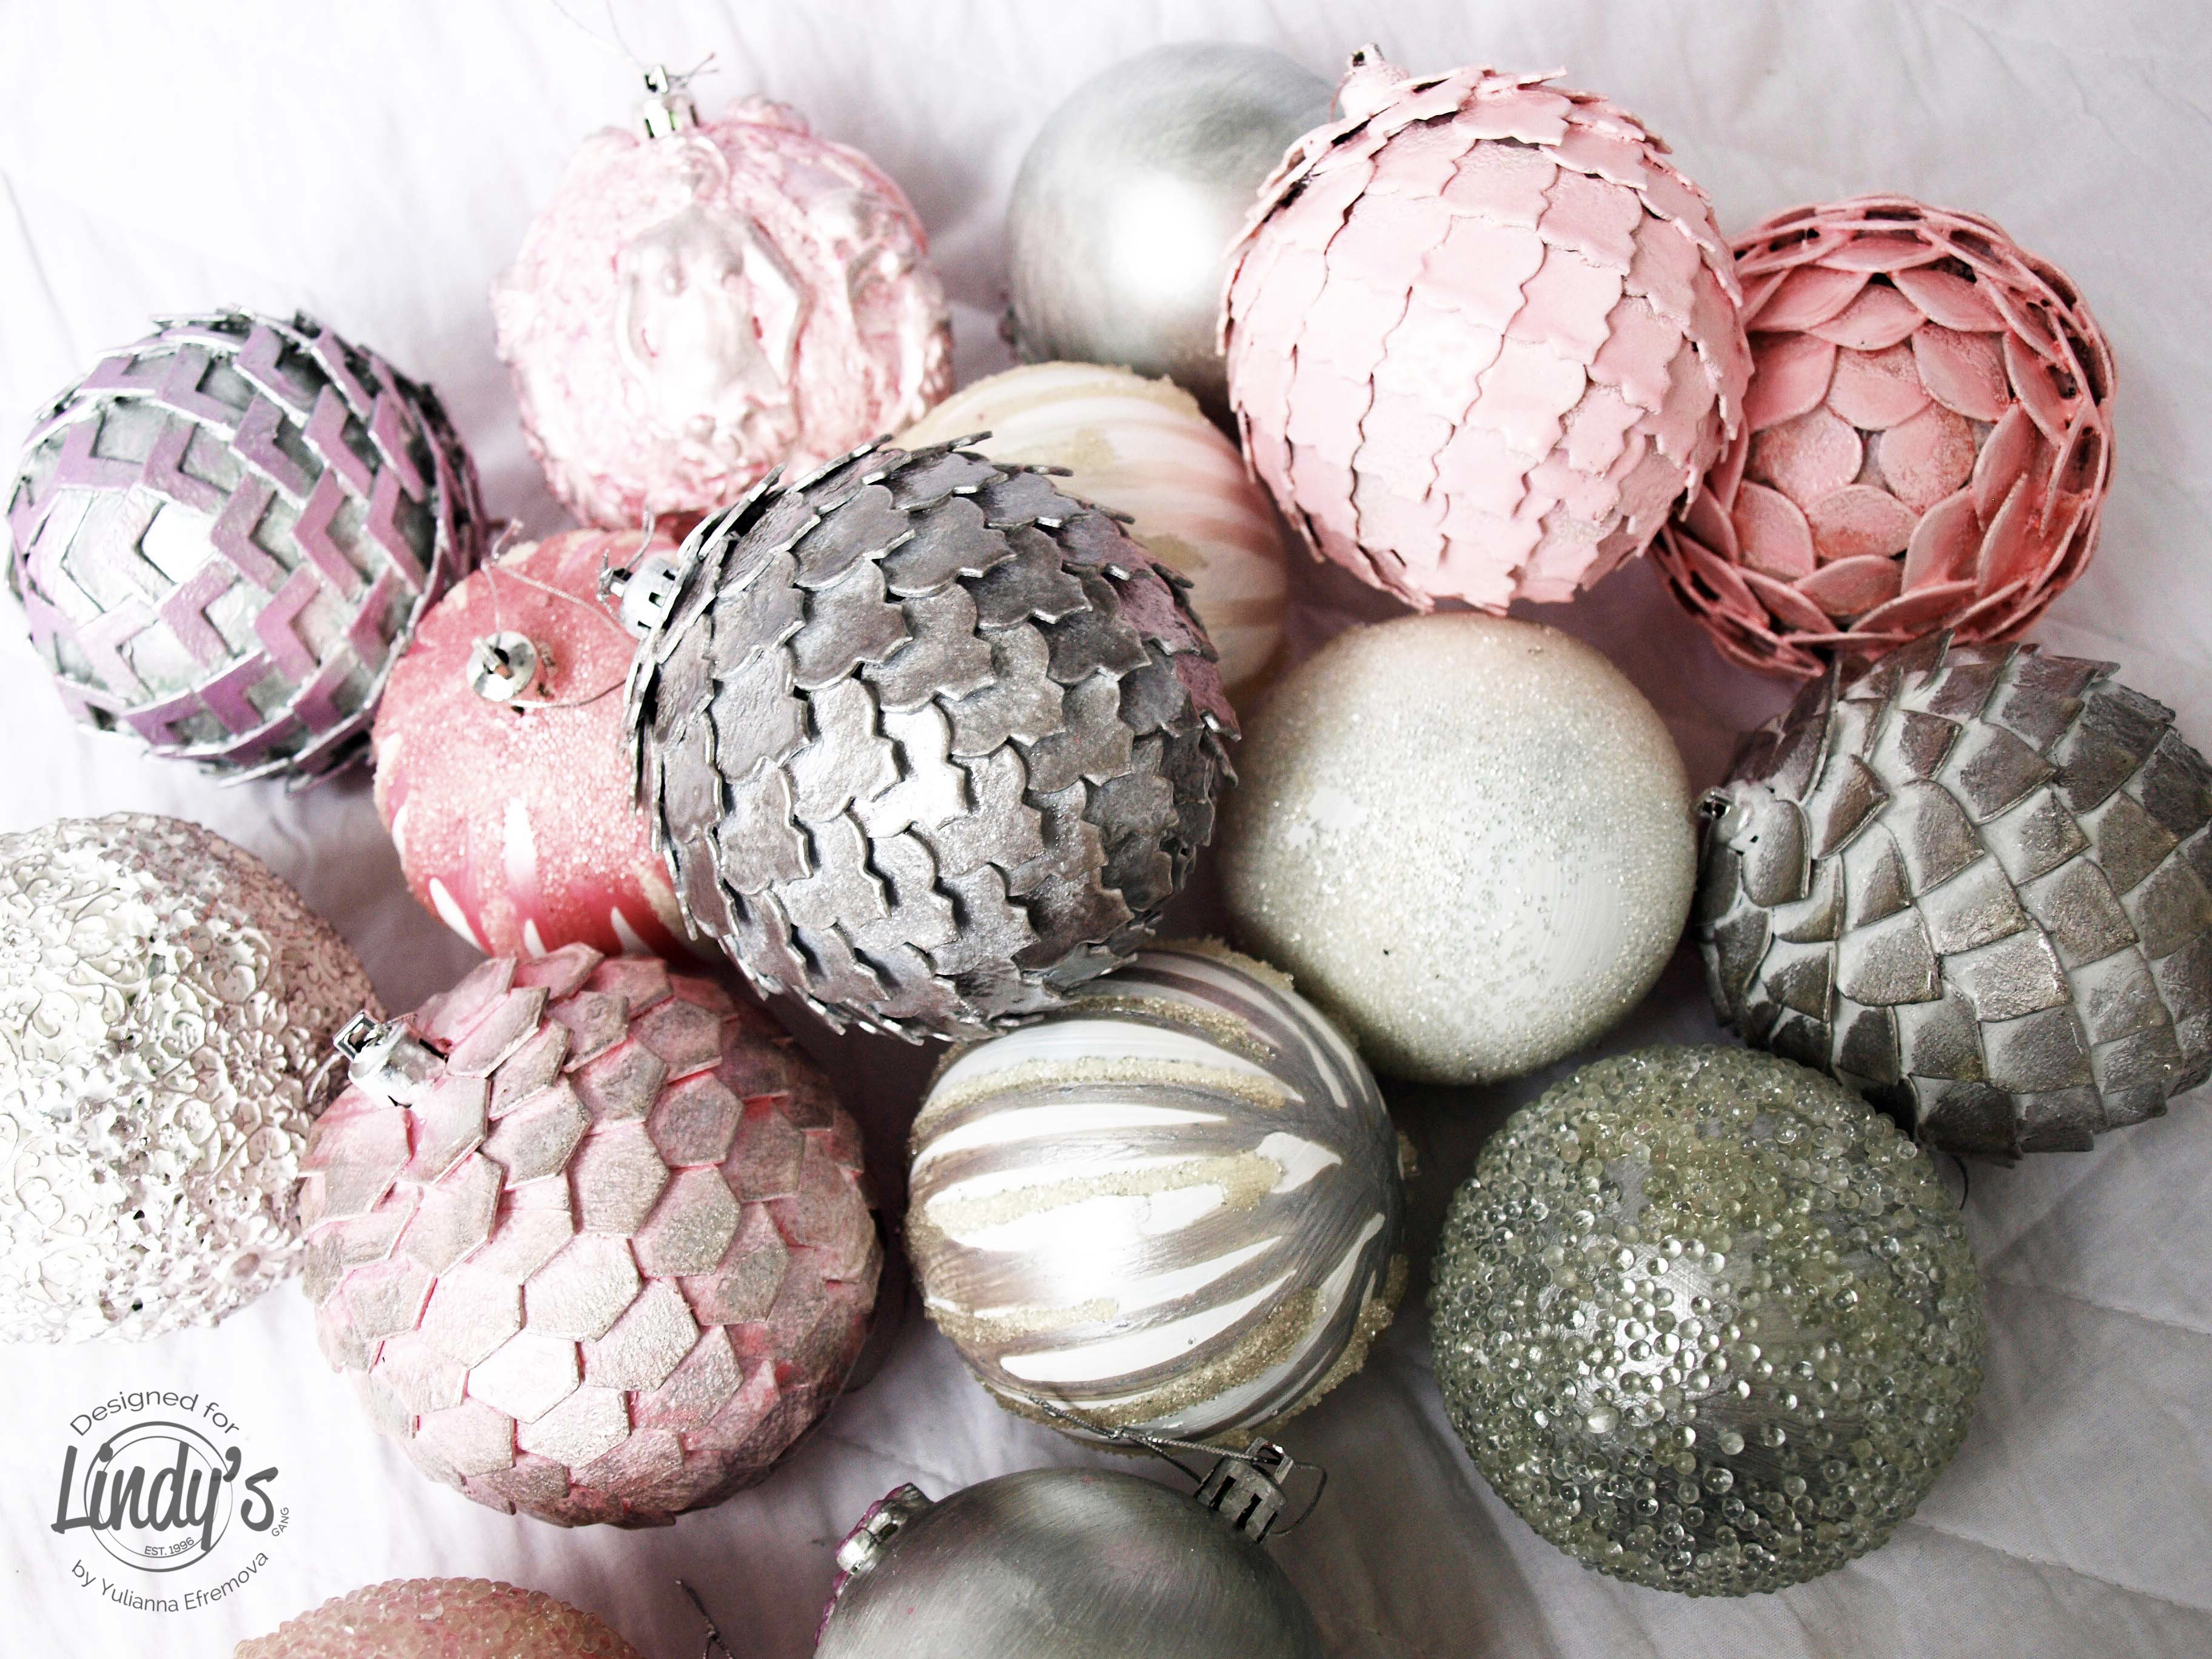 glitz spritz brushed nickel and embossing powder queen shebas silver ep oom pah pah pink to create my mixed media christmas balls